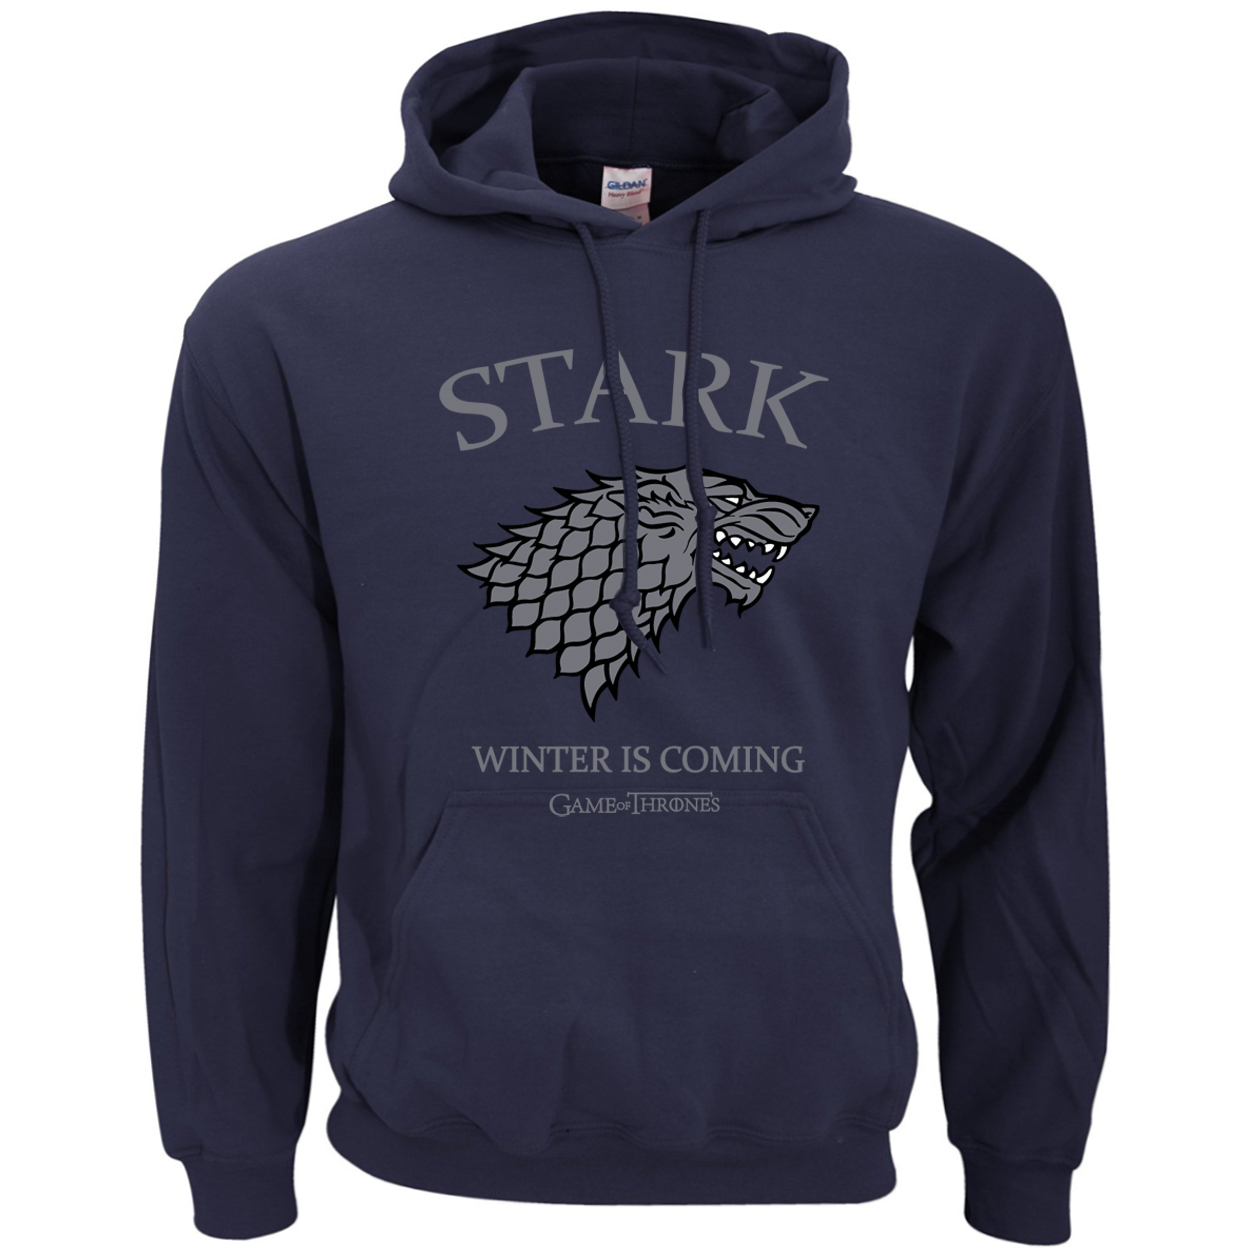 House Stark Winter Is Coming Game Of Thrones Hoodies Men 2019 Spring Winter Hoodie Sweatshirts Men Fleece Hip Hop Streetwear